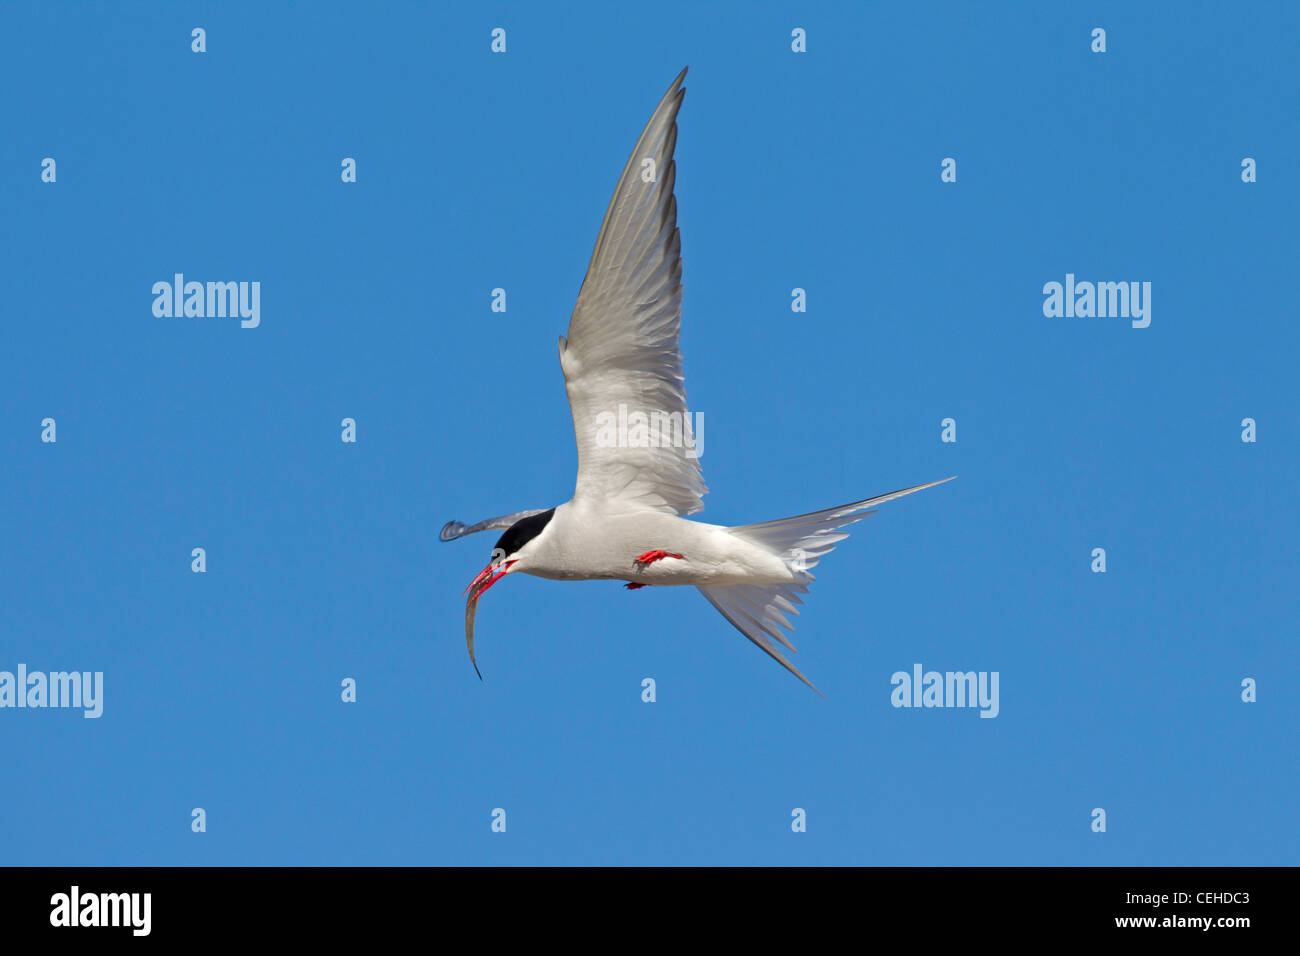 Arctic Tern (Sterna paradisaea) in flight with fish in beak, Wadden Sea, Germany - Stock Image